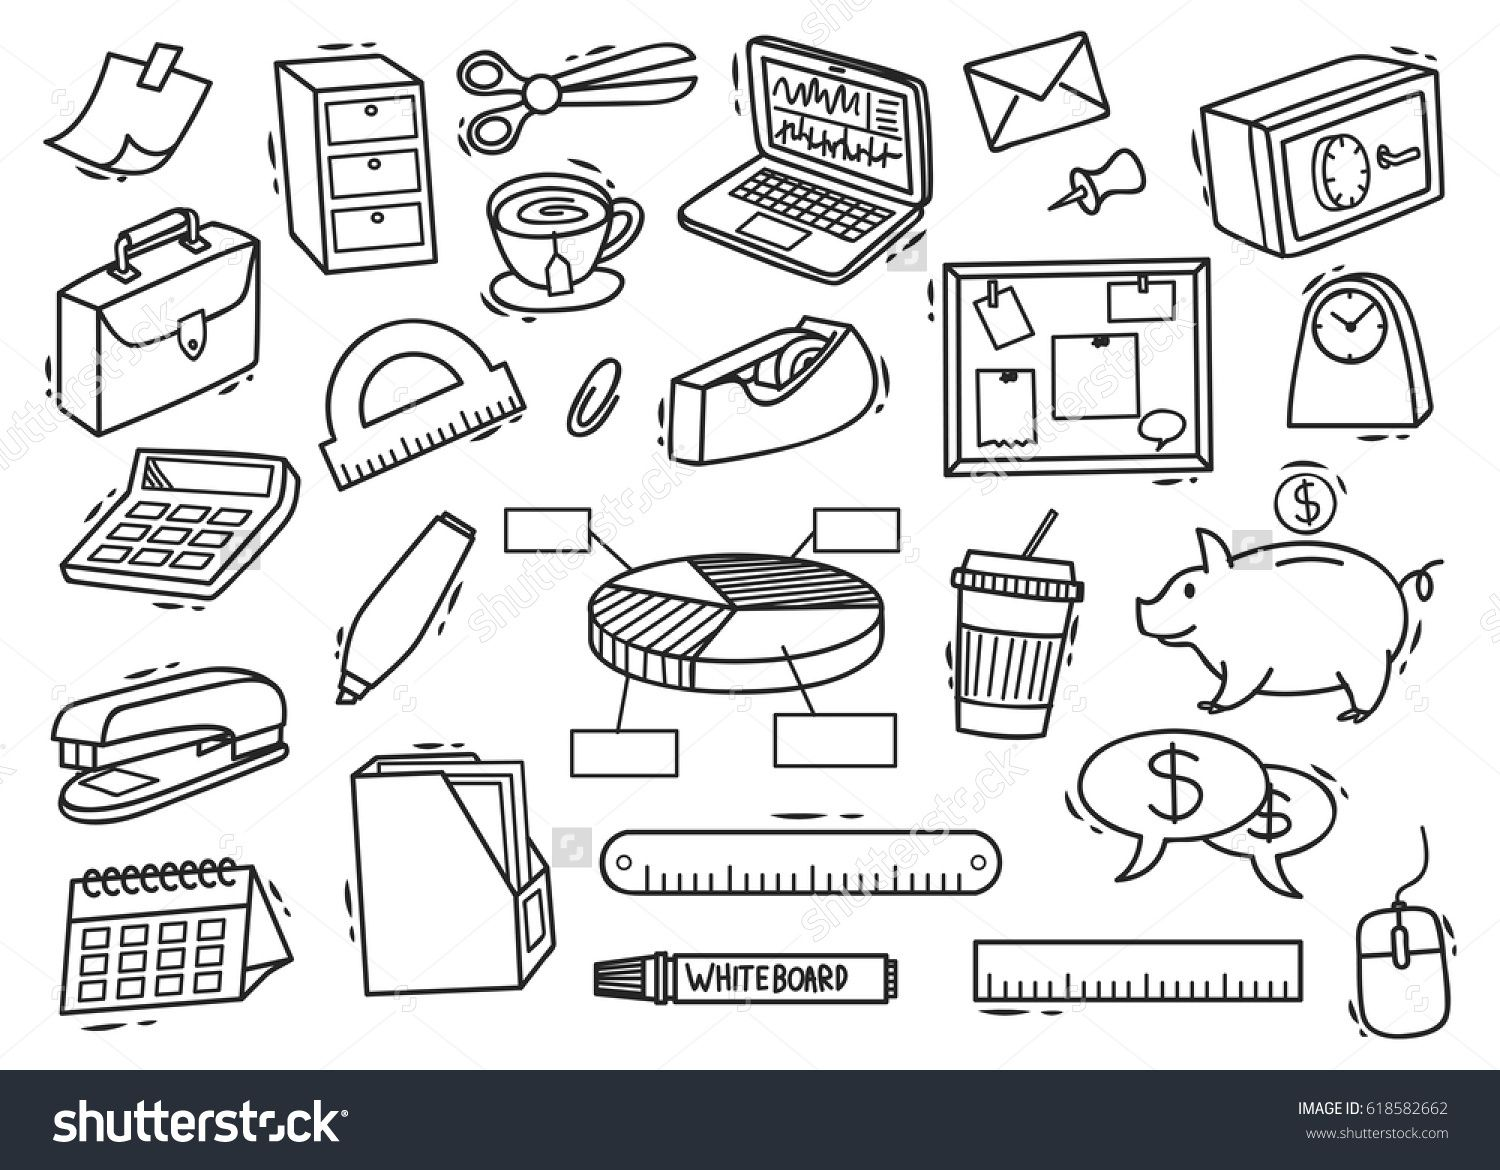 Set Of Office Supplies Doodle In White